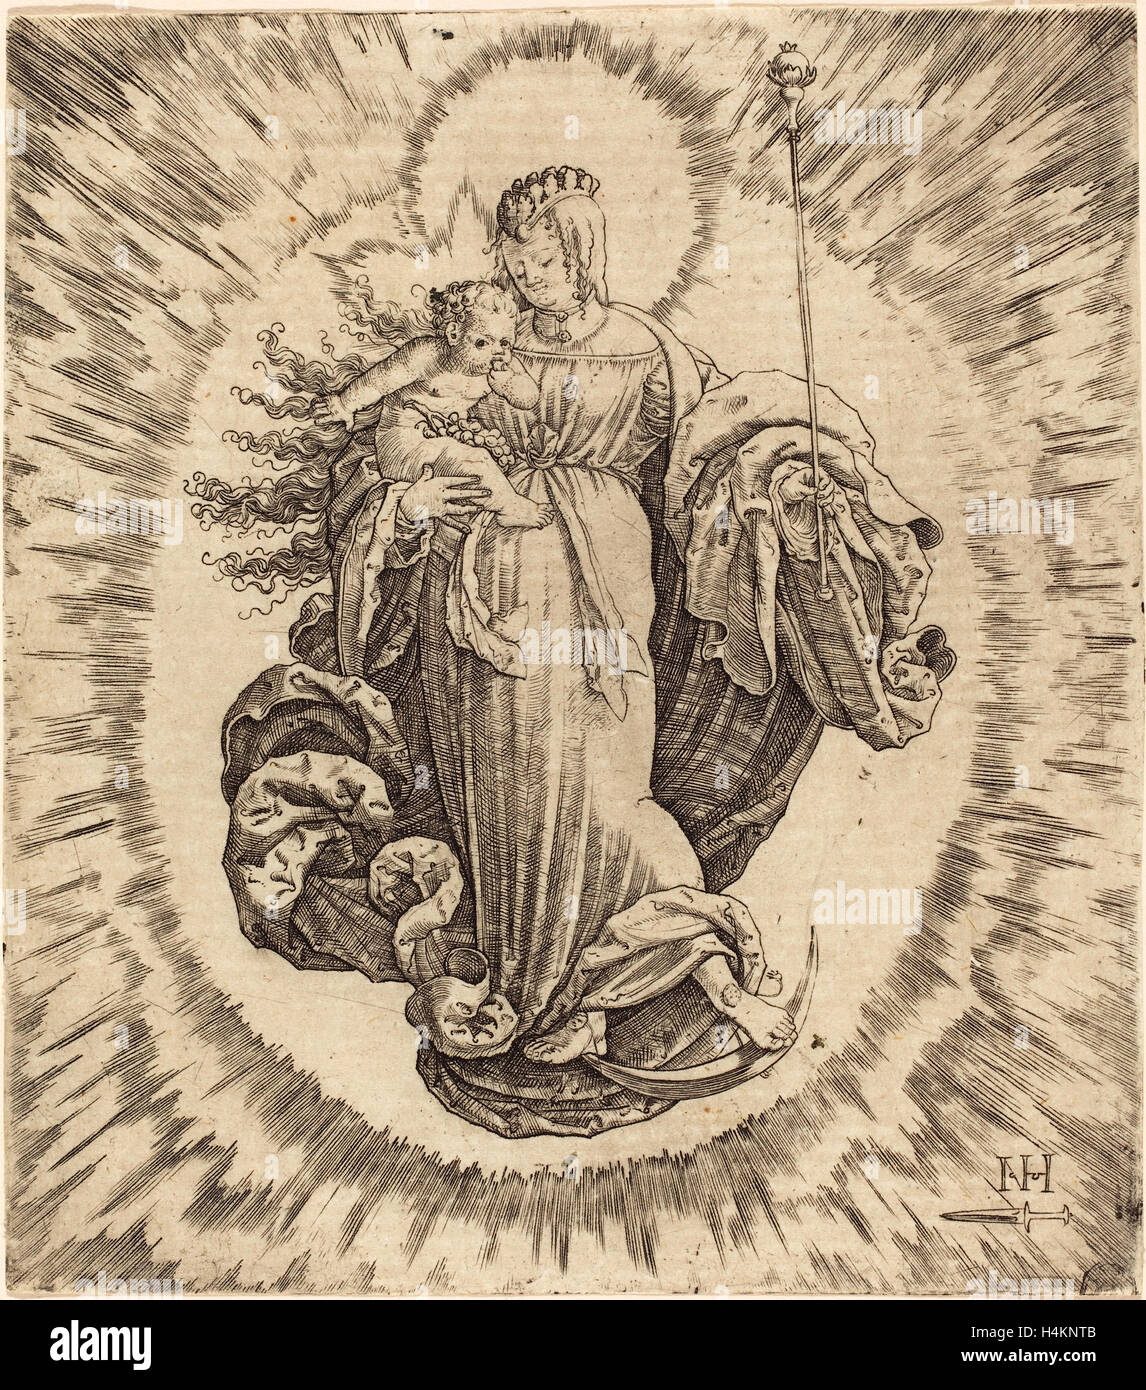 Master N.H. with the Dagger (German, active first half 16th century), Madonna on a Crescent, engraving - Stock Image